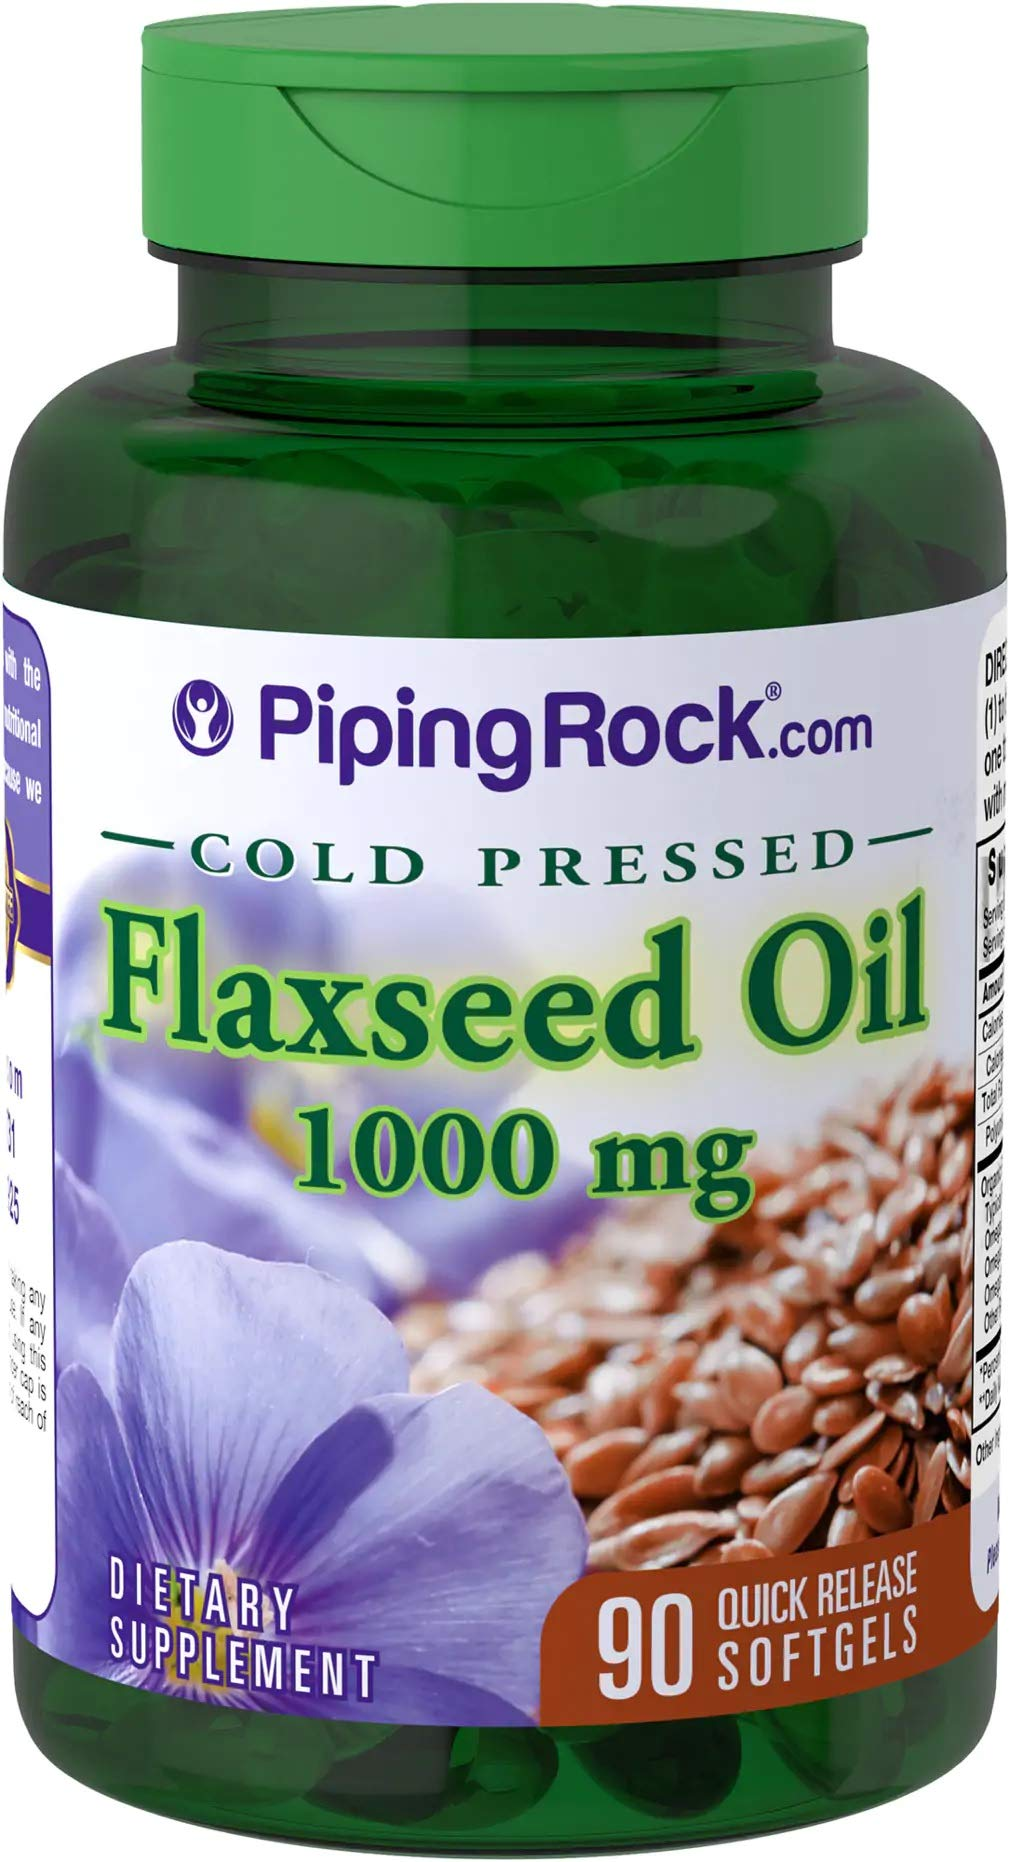 Piping Rock Flaxseed Oil Cold Pressed 1000 mg 90 Quick Release Softgels Dietary Supplement